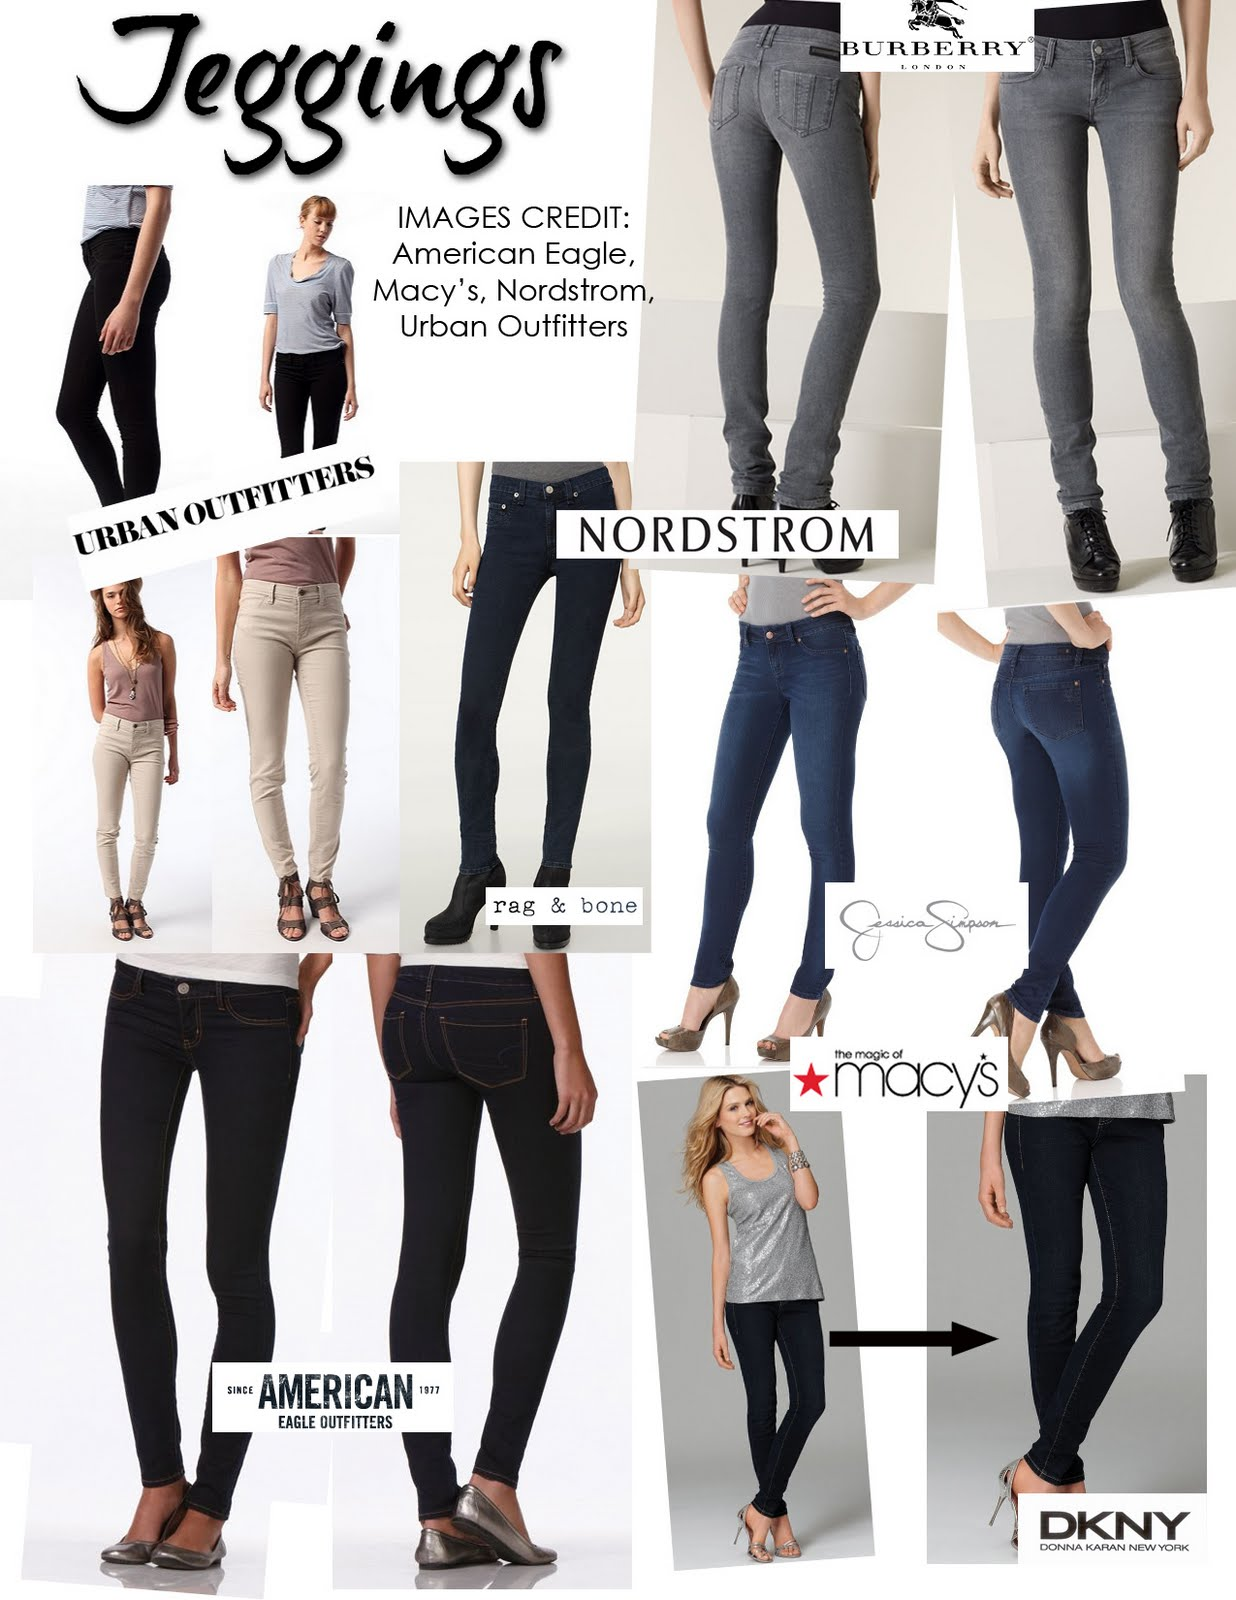 difference between jeggings and skinny jeans